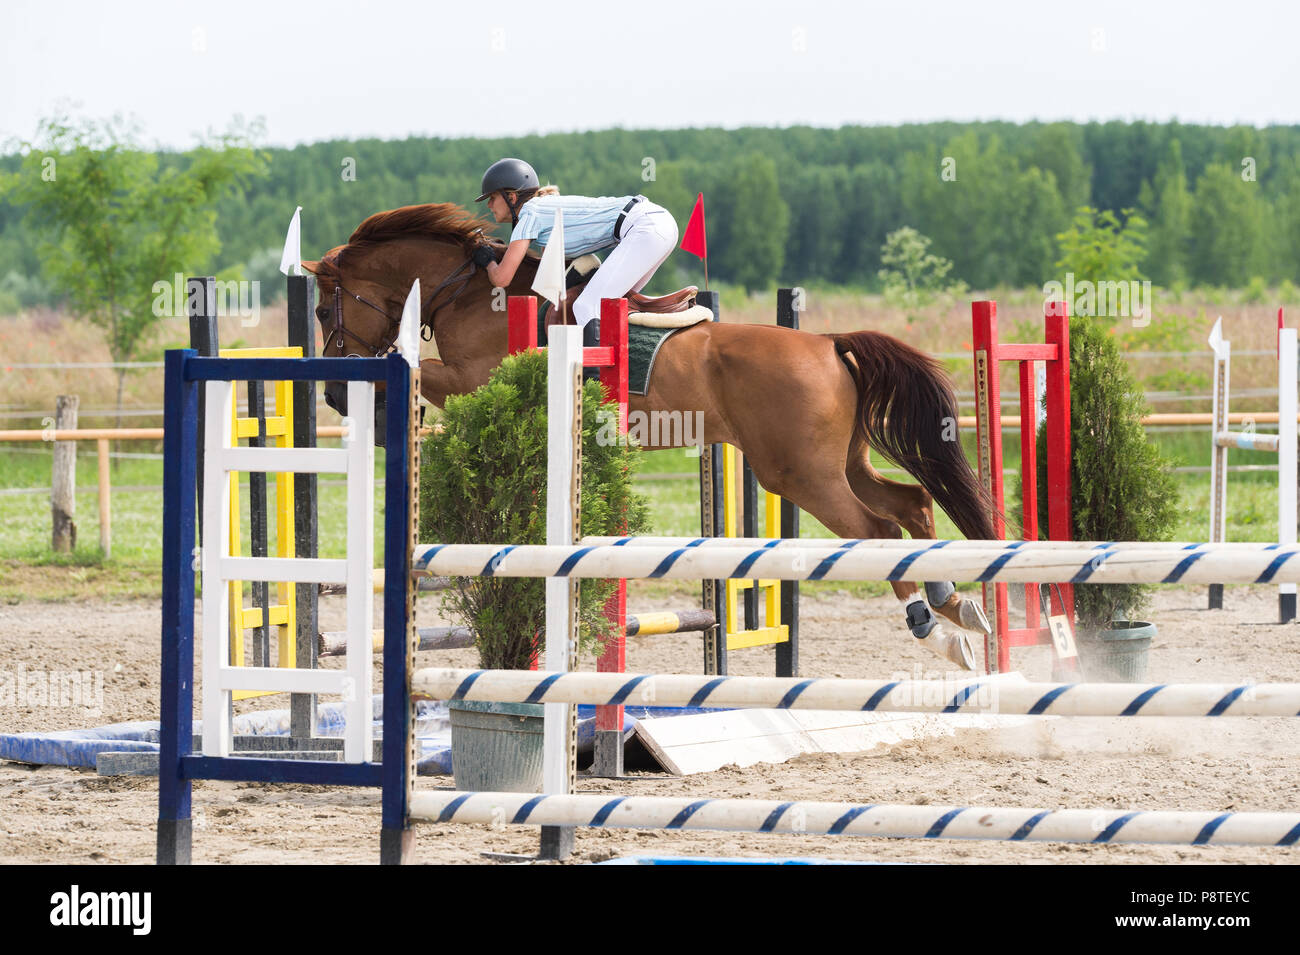 Equestrian Sports, Horse jumping, Show Jumping, Horse Riding - Stock Image